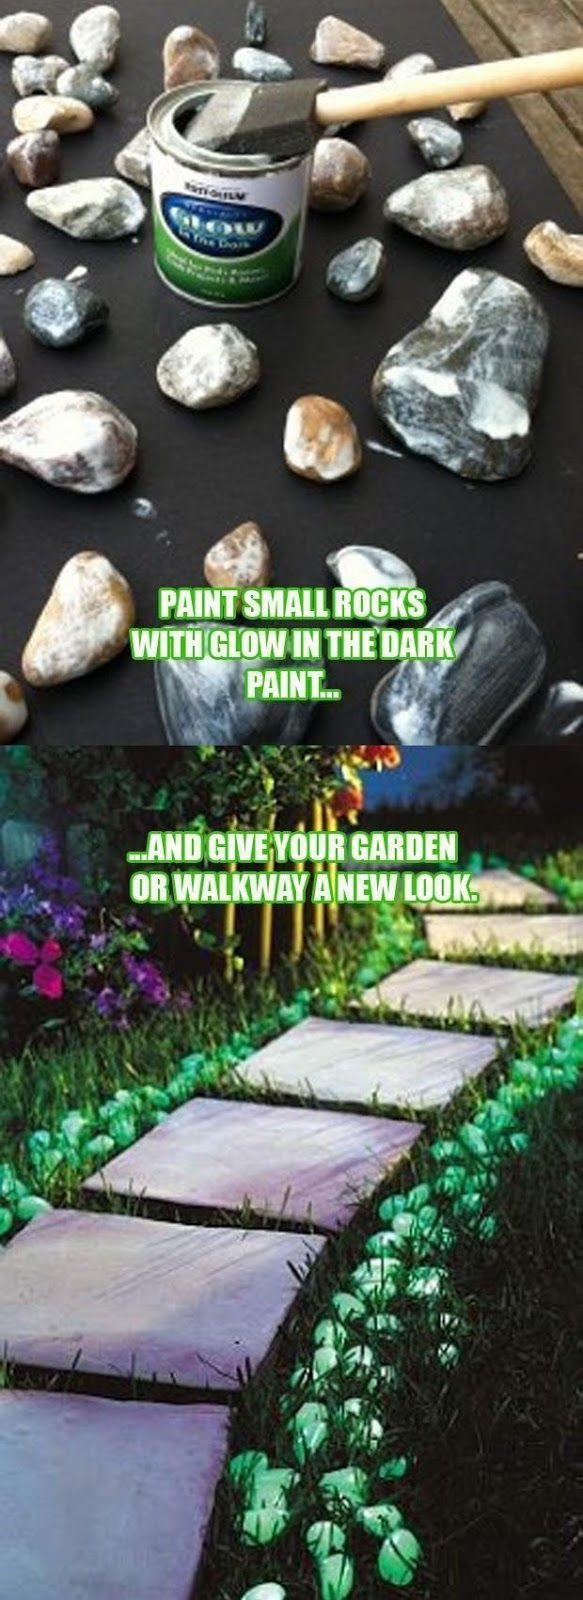 GLOW ROCKS:  Glow in the dark paint rules!!  This would be great for campsites or a camping party activity or party favor!